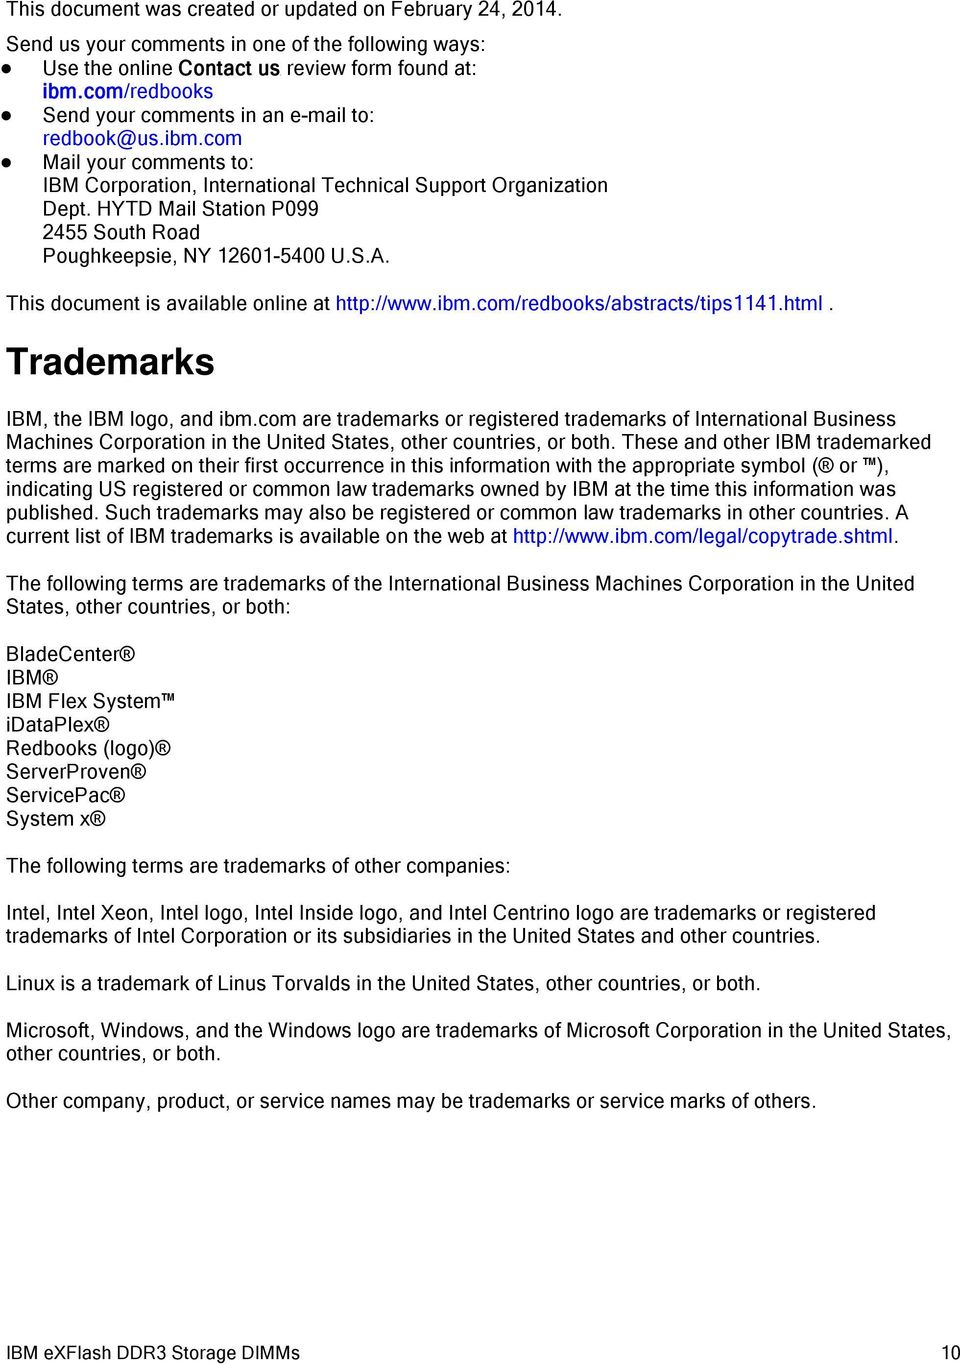 HYTD Mail Statin P099 2455 Suth Rad Pughkeepsie, NY 12601-5400 U.S.A. This dcument is available nline at http://www.ibm.cm/redbks/abstracts/tips1141.html. Trademarks IBM, the IBM lg, and ibm.